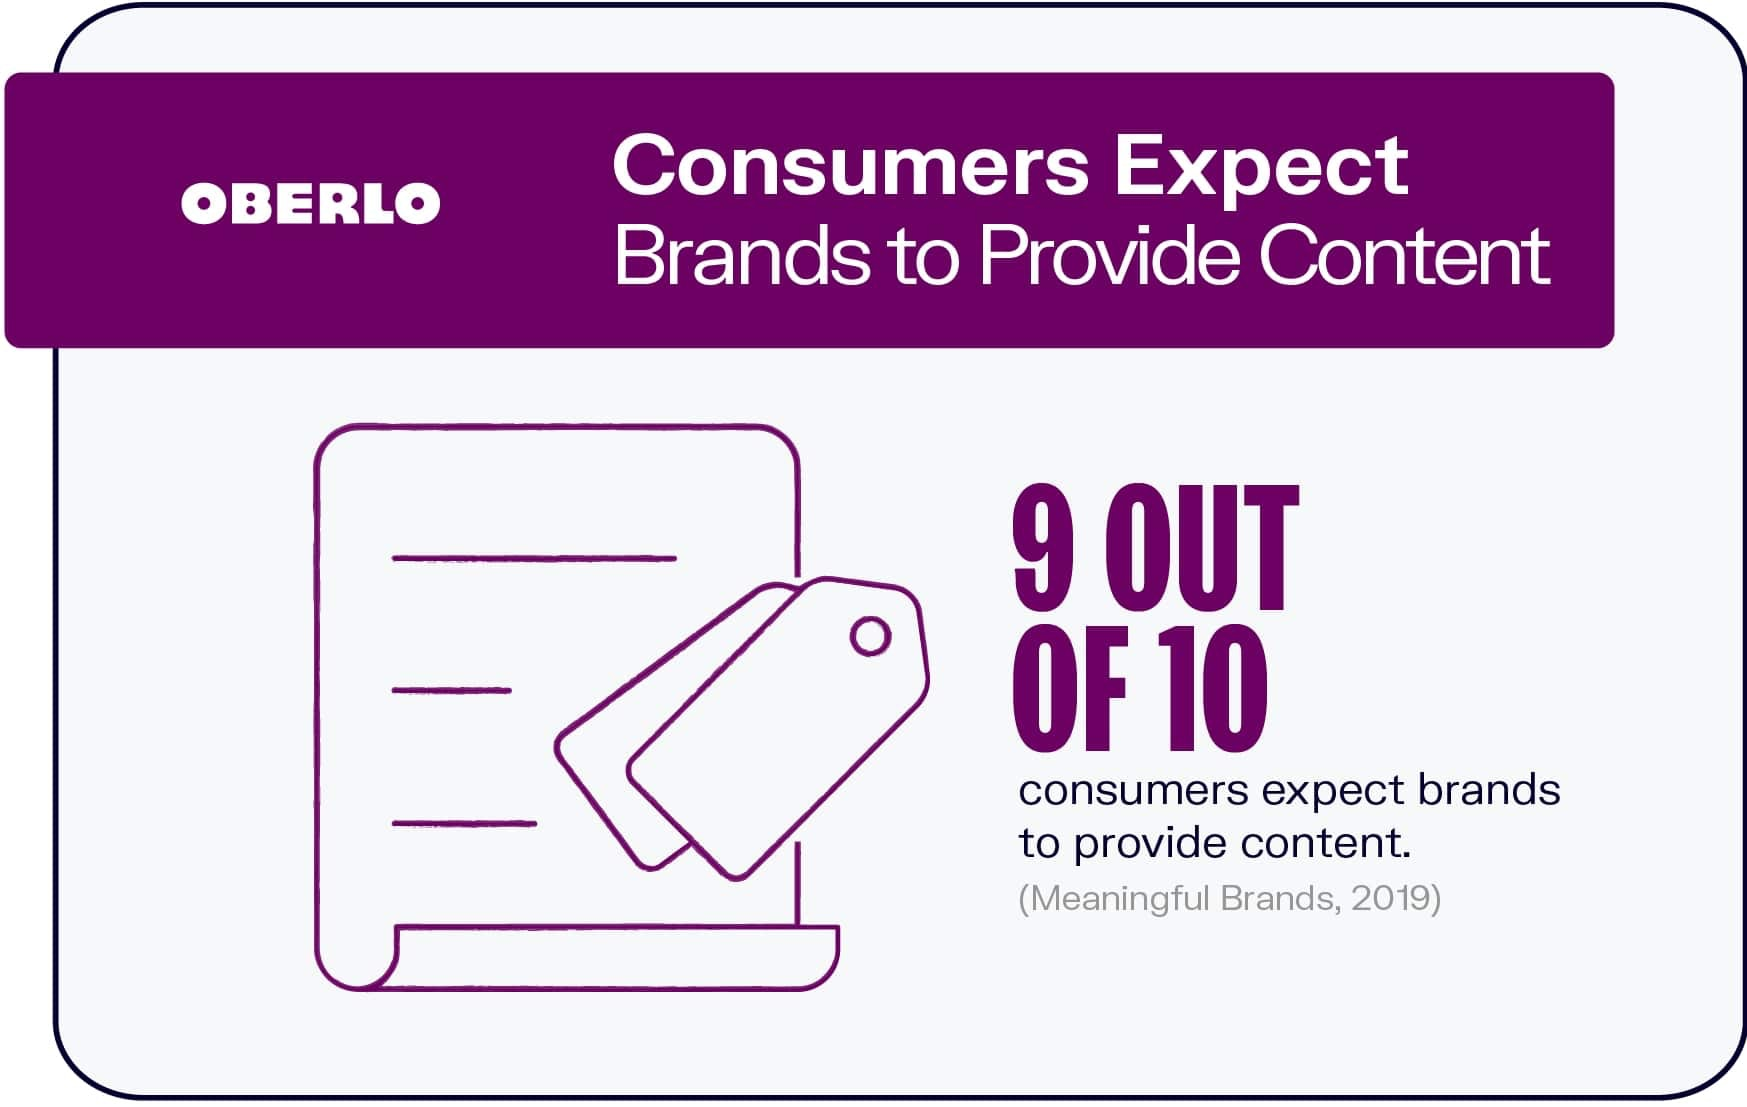 Consumers Expect Brands to Provide Content